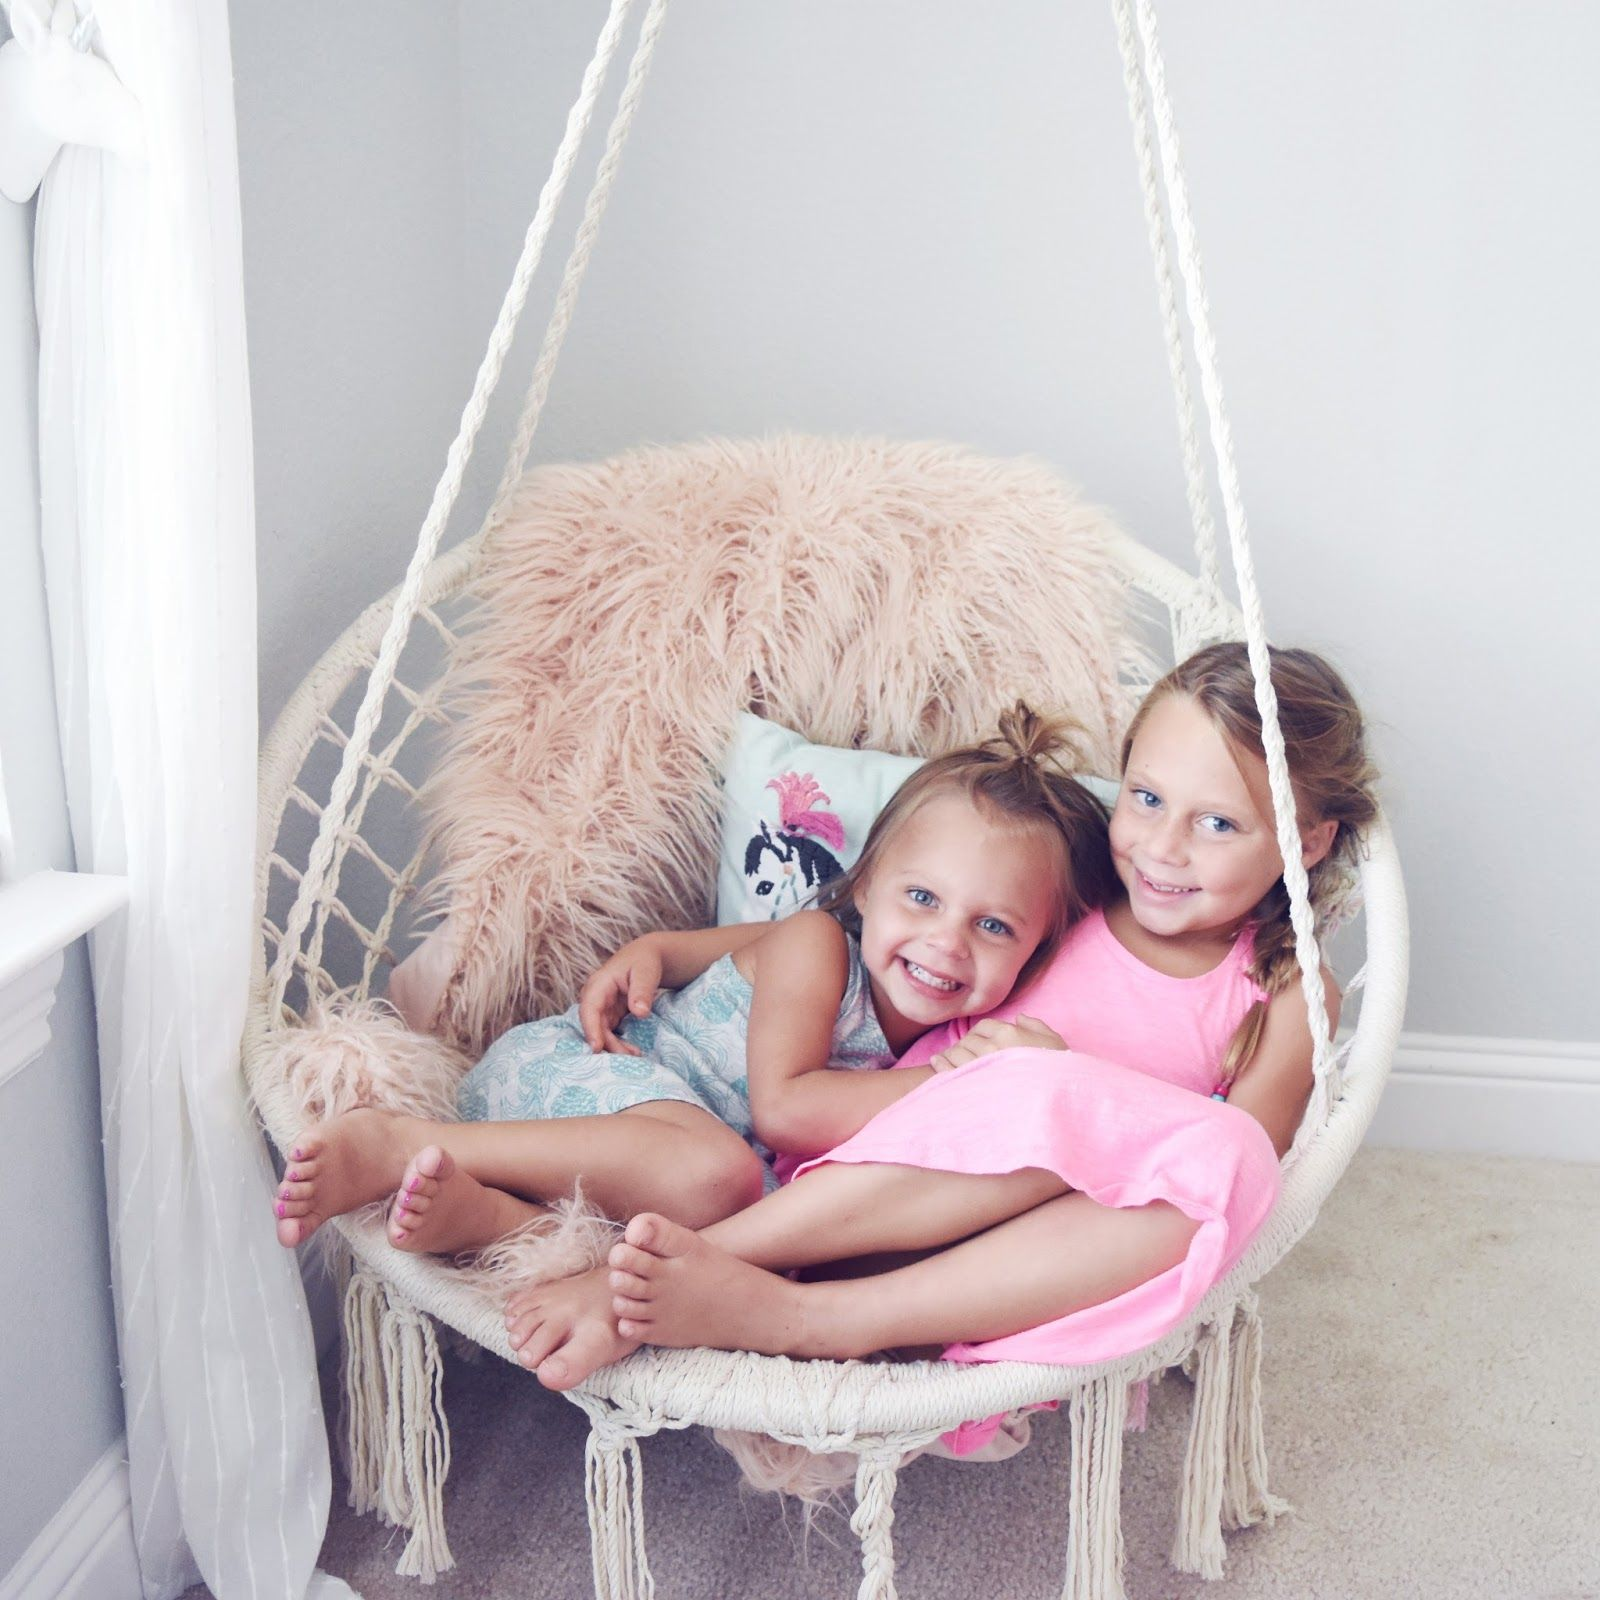 Pillow Thought Swinging Chair Swing Chair Bedroom Room Swing